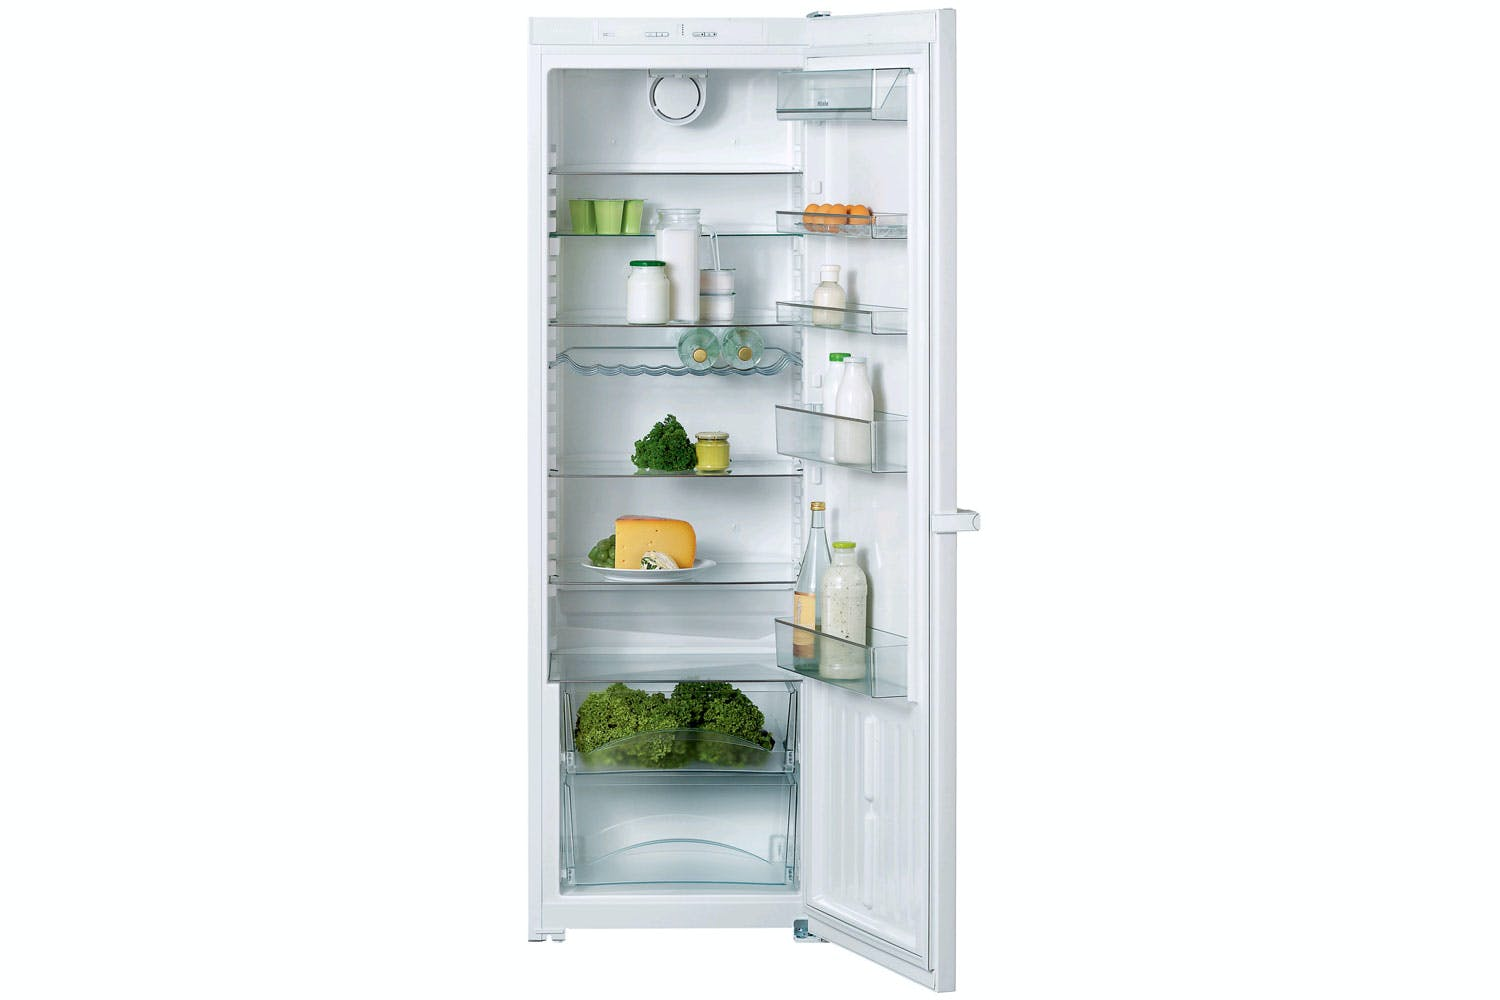 Miele K 12820 SD  Freestanding Refrigerator   Practical Interior Space and Versatile Storage with Dynamic Cooling